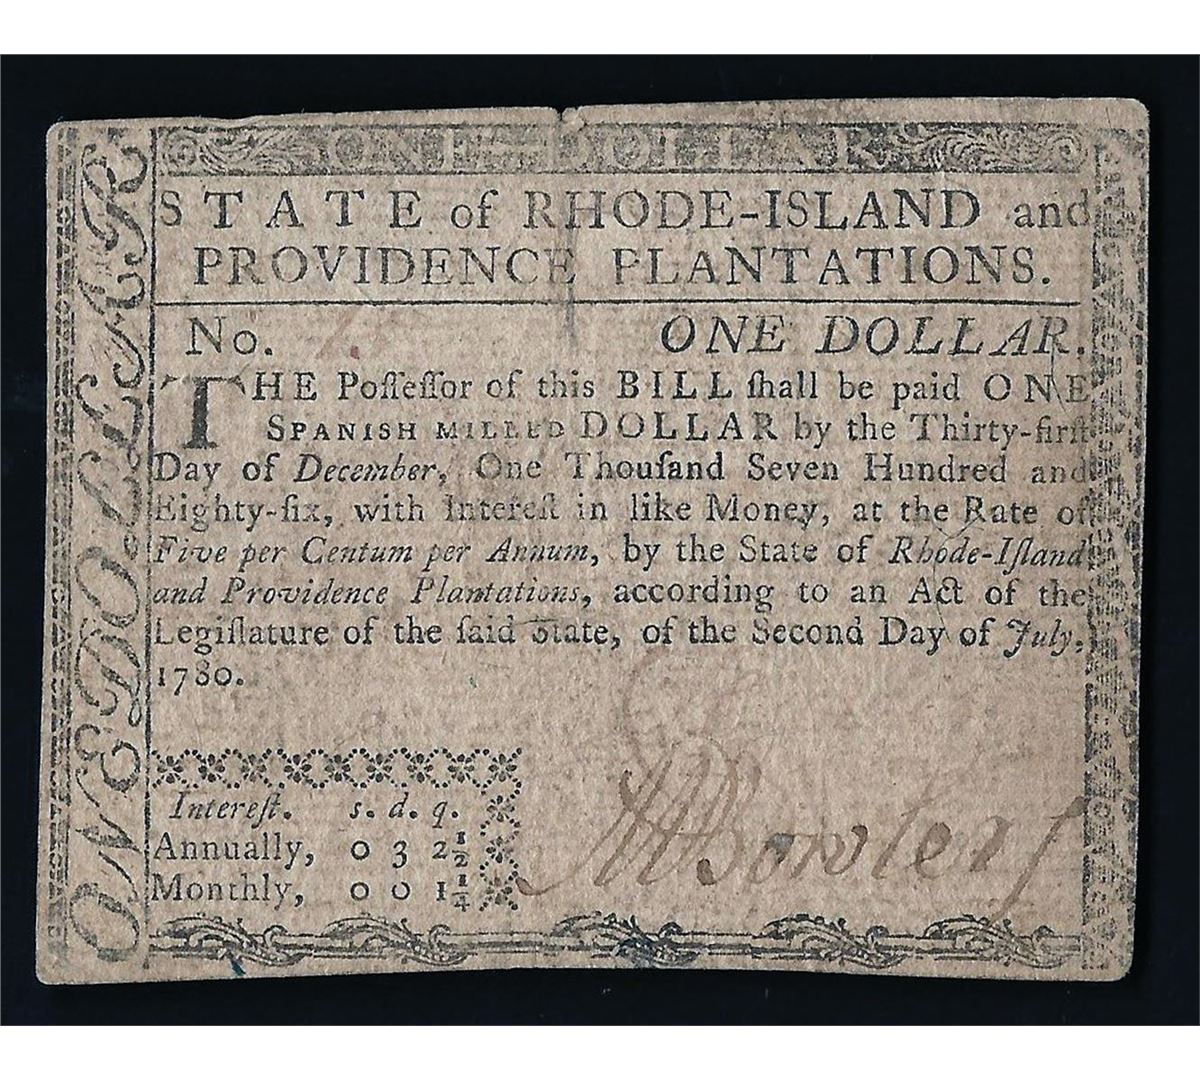 Image  Rhode Island One Spanish Milled Dollar Colonial Currency Note